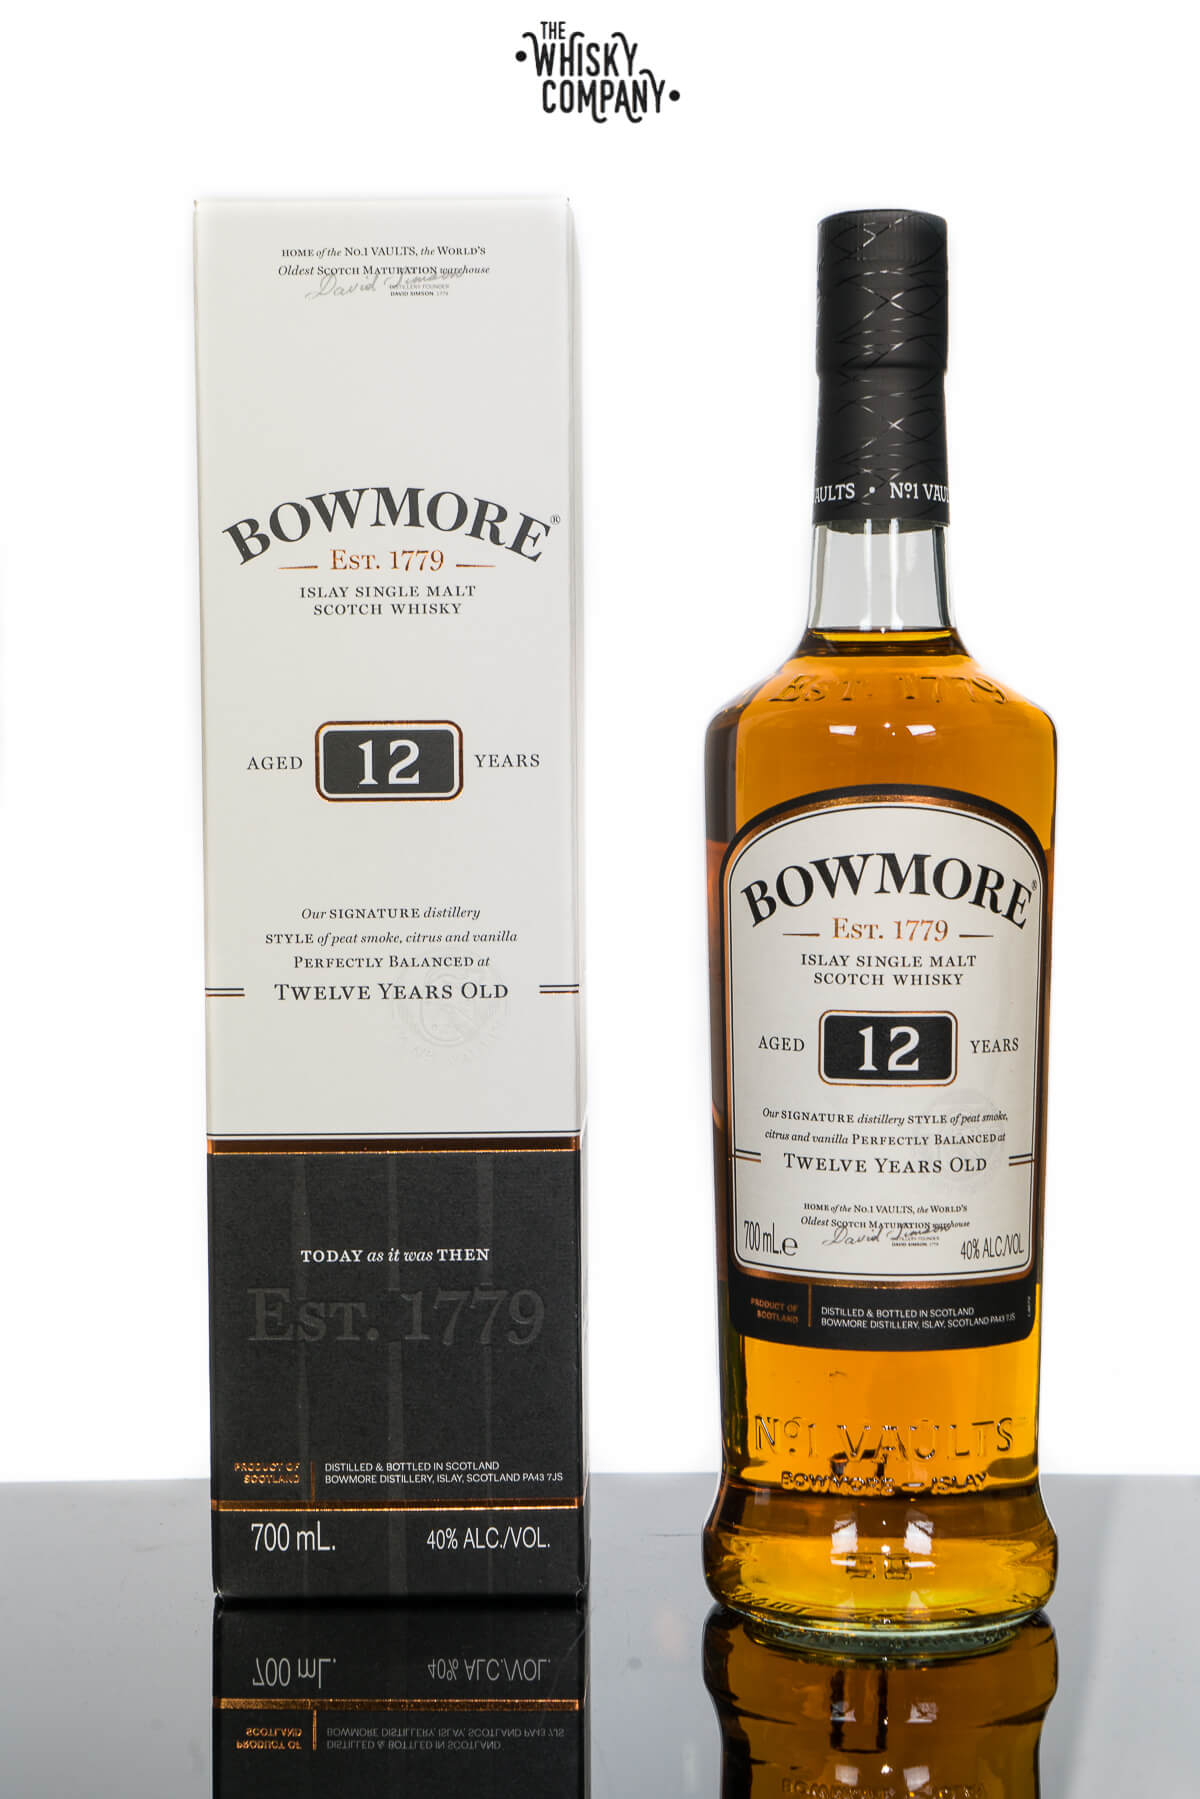 Bowmore Aged 12 Years Islay Single Malt Scotch Whisky (700ml)